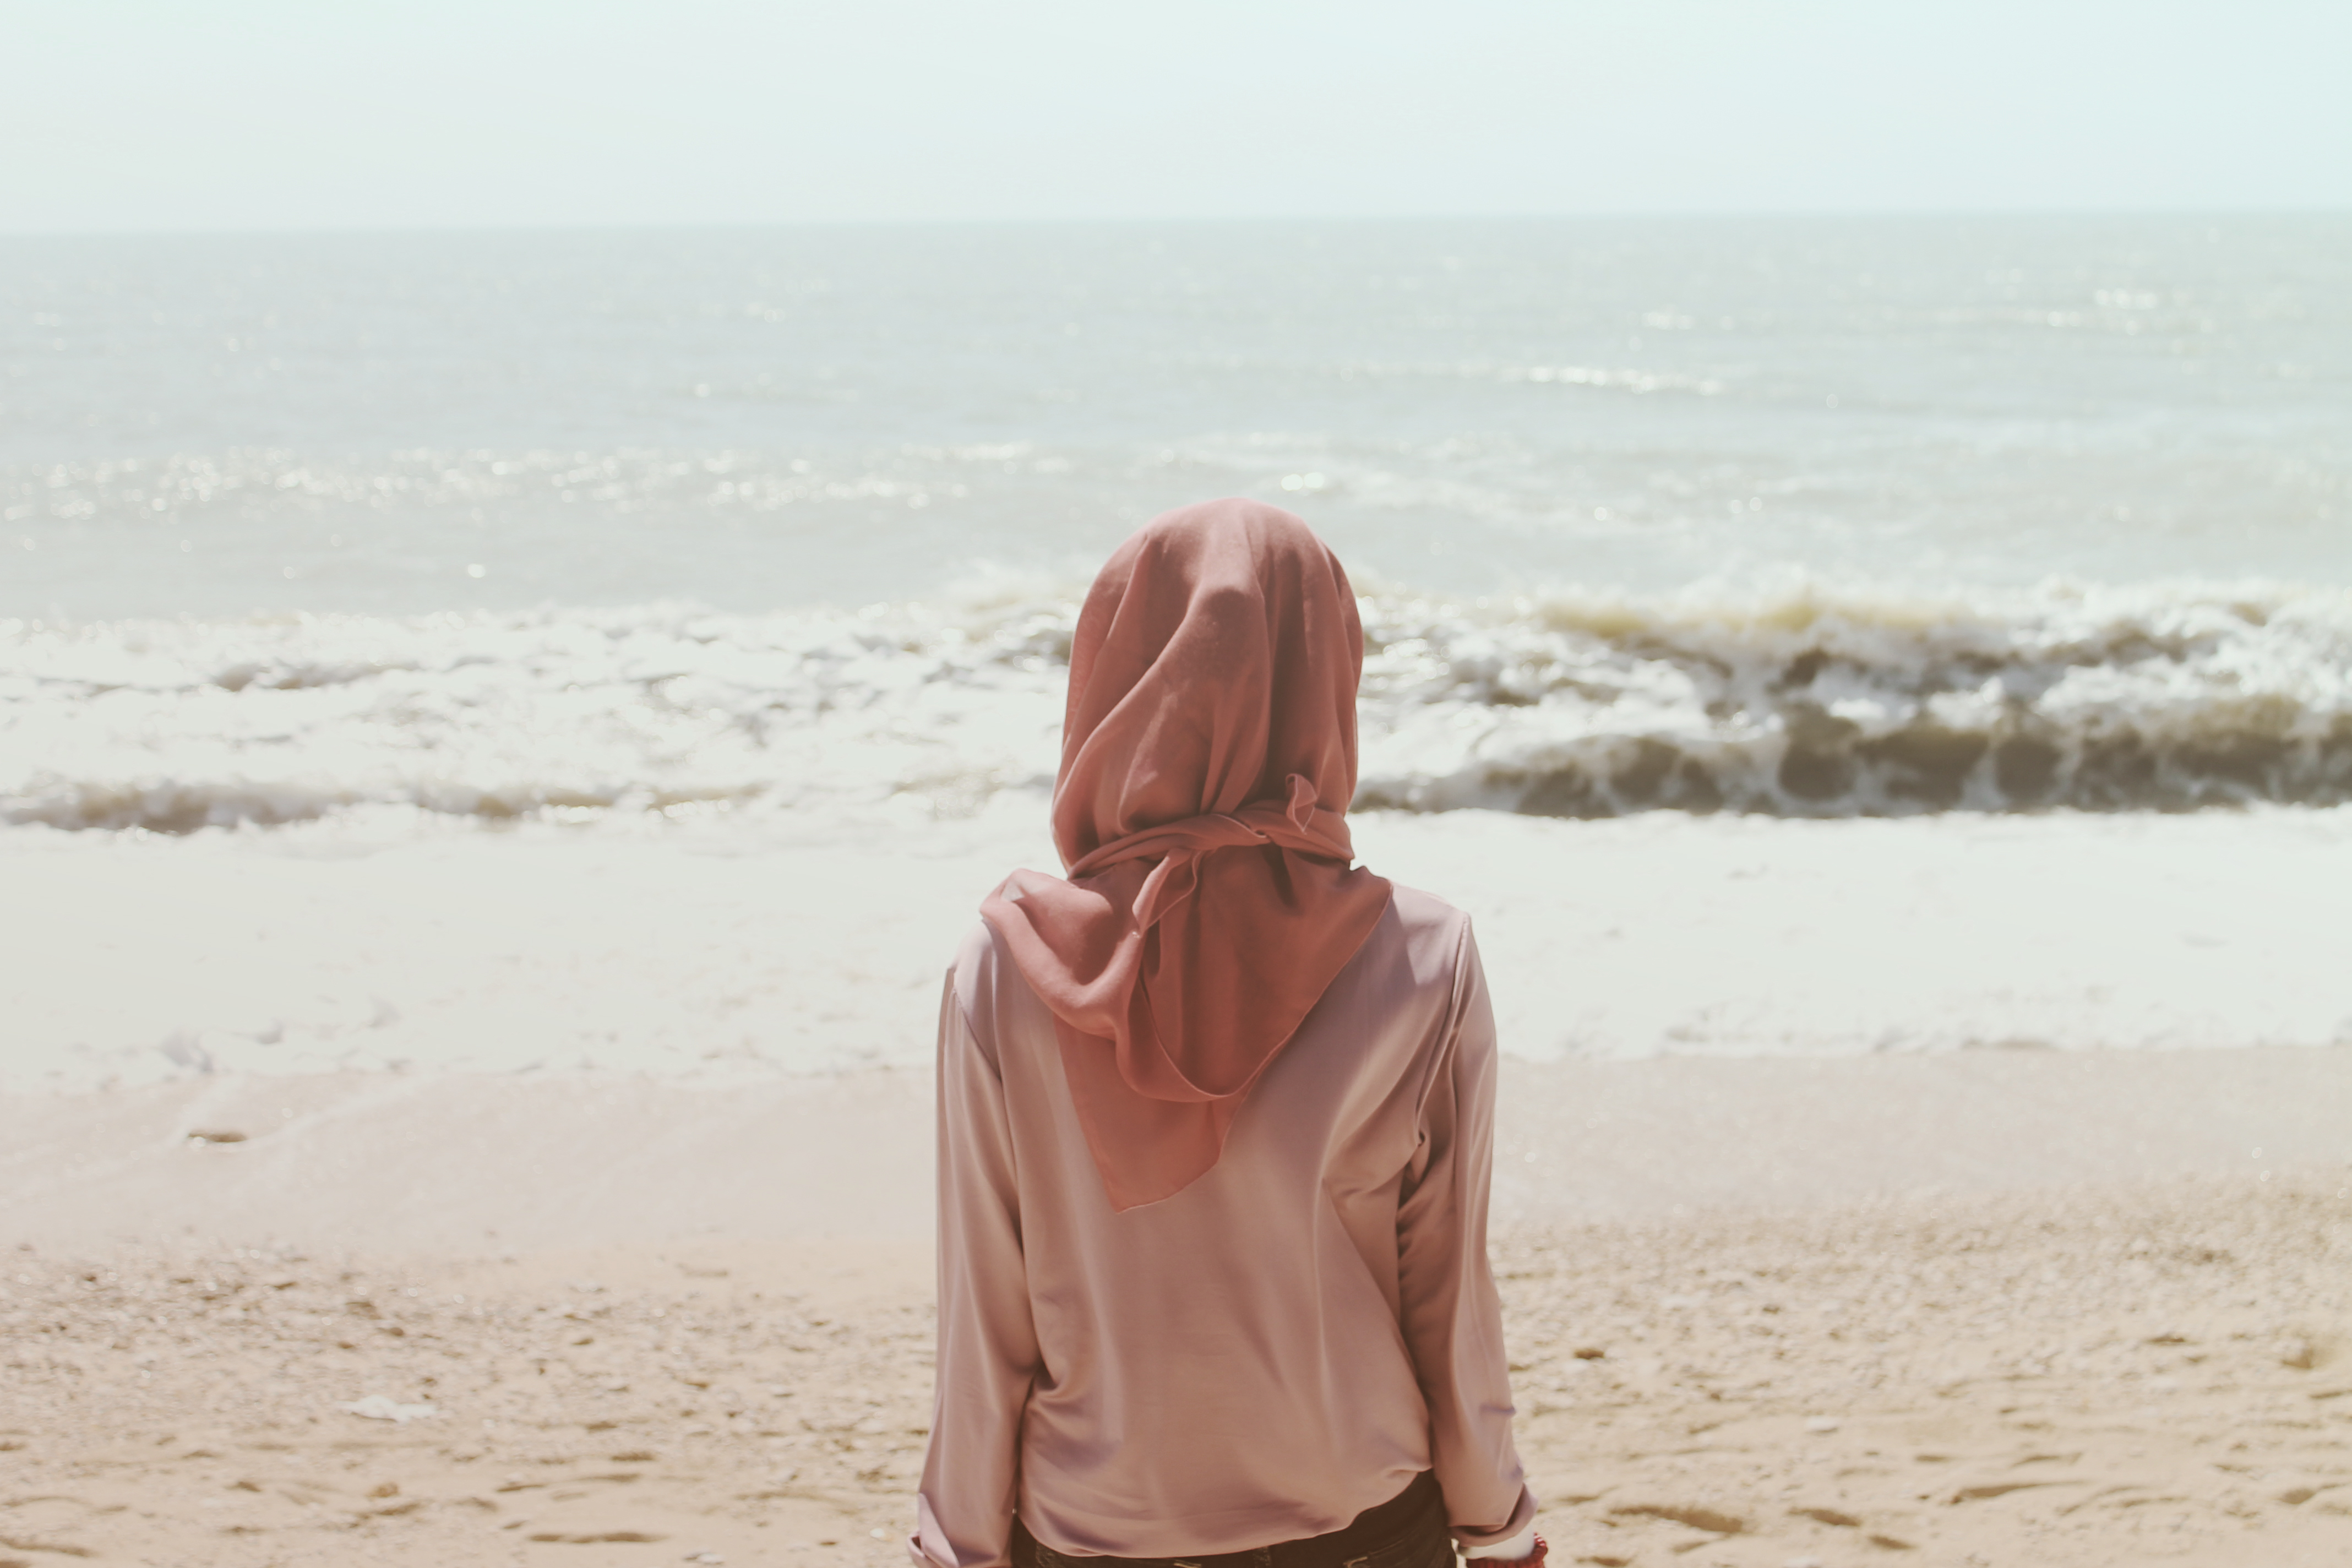 Employers Can Ban Headscarves and Religious Symbols - As Long as the Rules Apply to Everyone